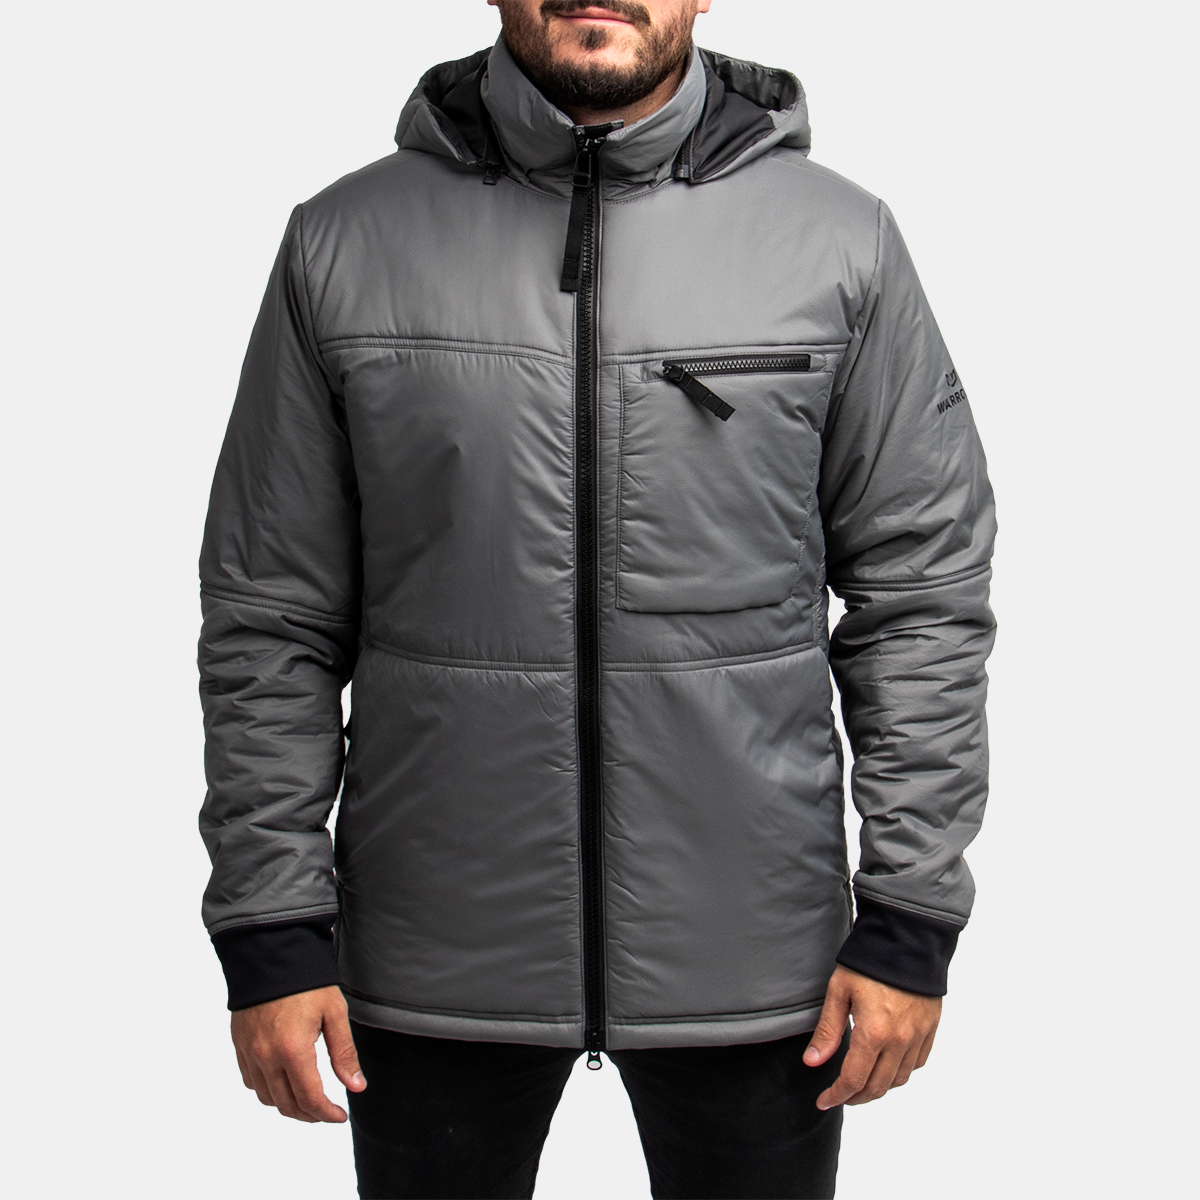 Men's Zip Insulator Jacket 2.0 - Irongate